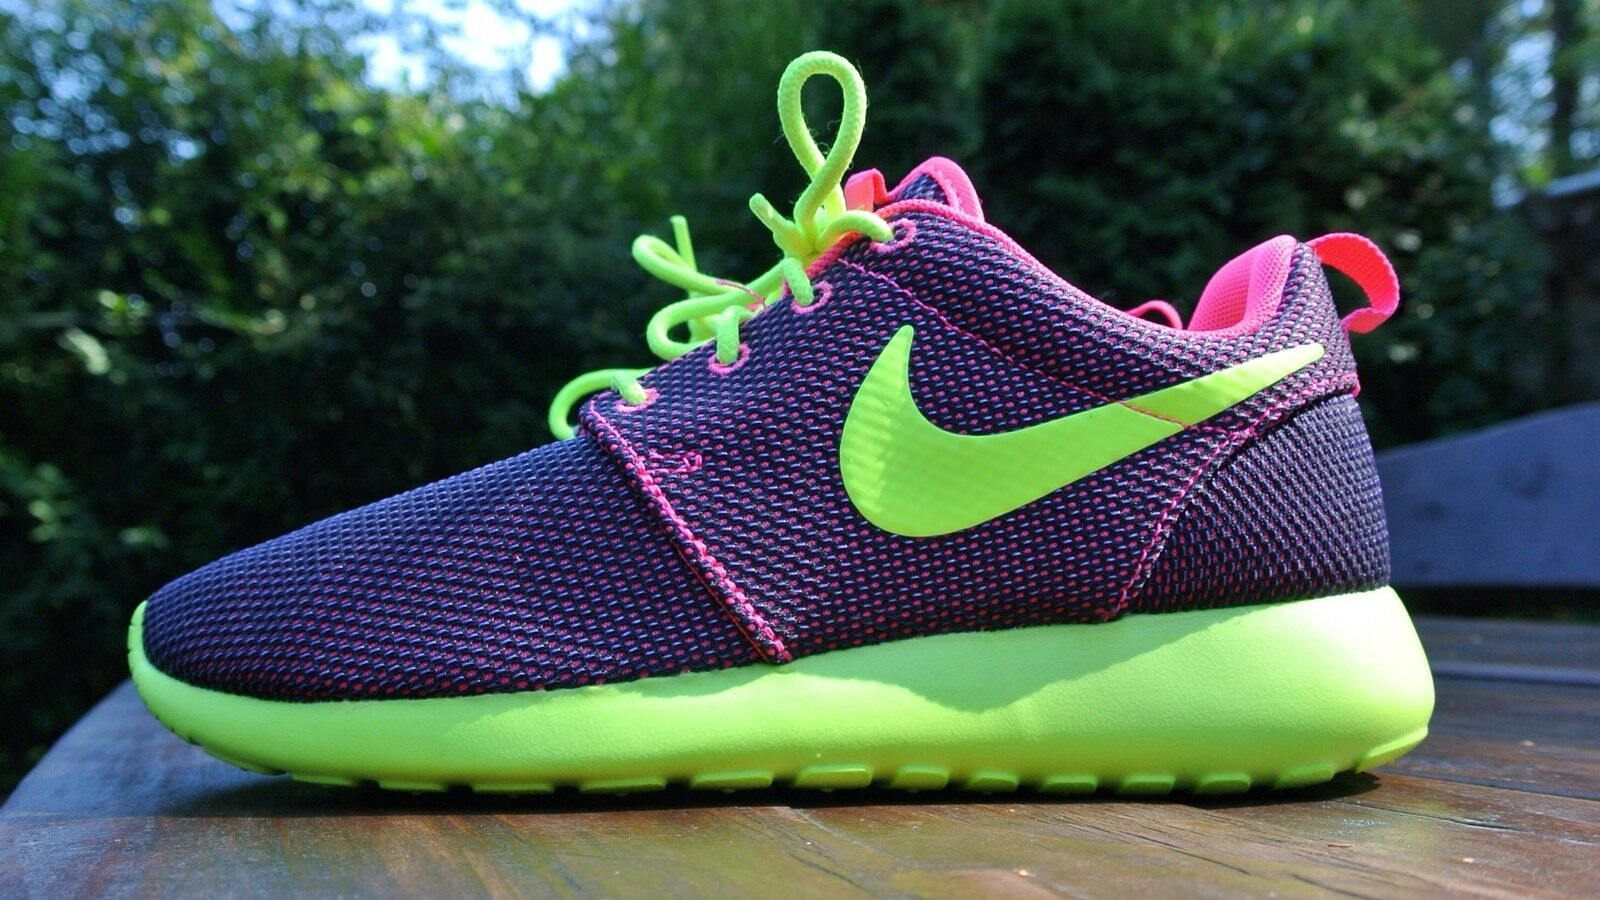 nike roshe run Women Running Crossing shoes Multi Color 100% Authentic